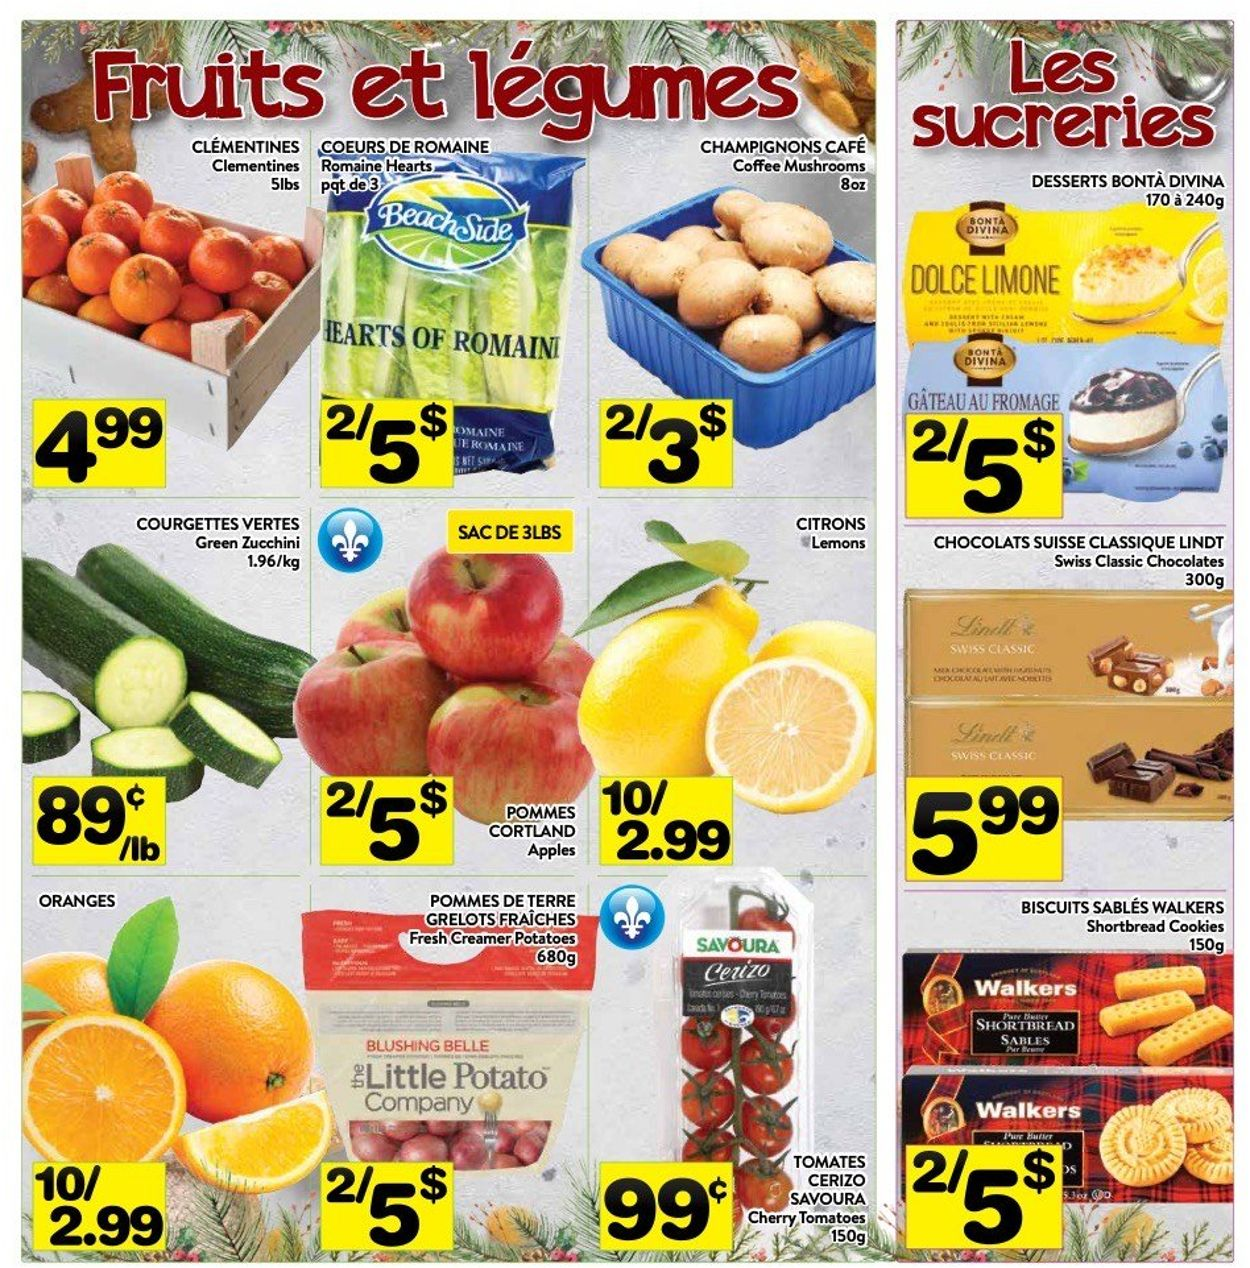 PA Supermarché - Christmas 2020 Flyer - 12/14-12/27/2020 (Page 8)